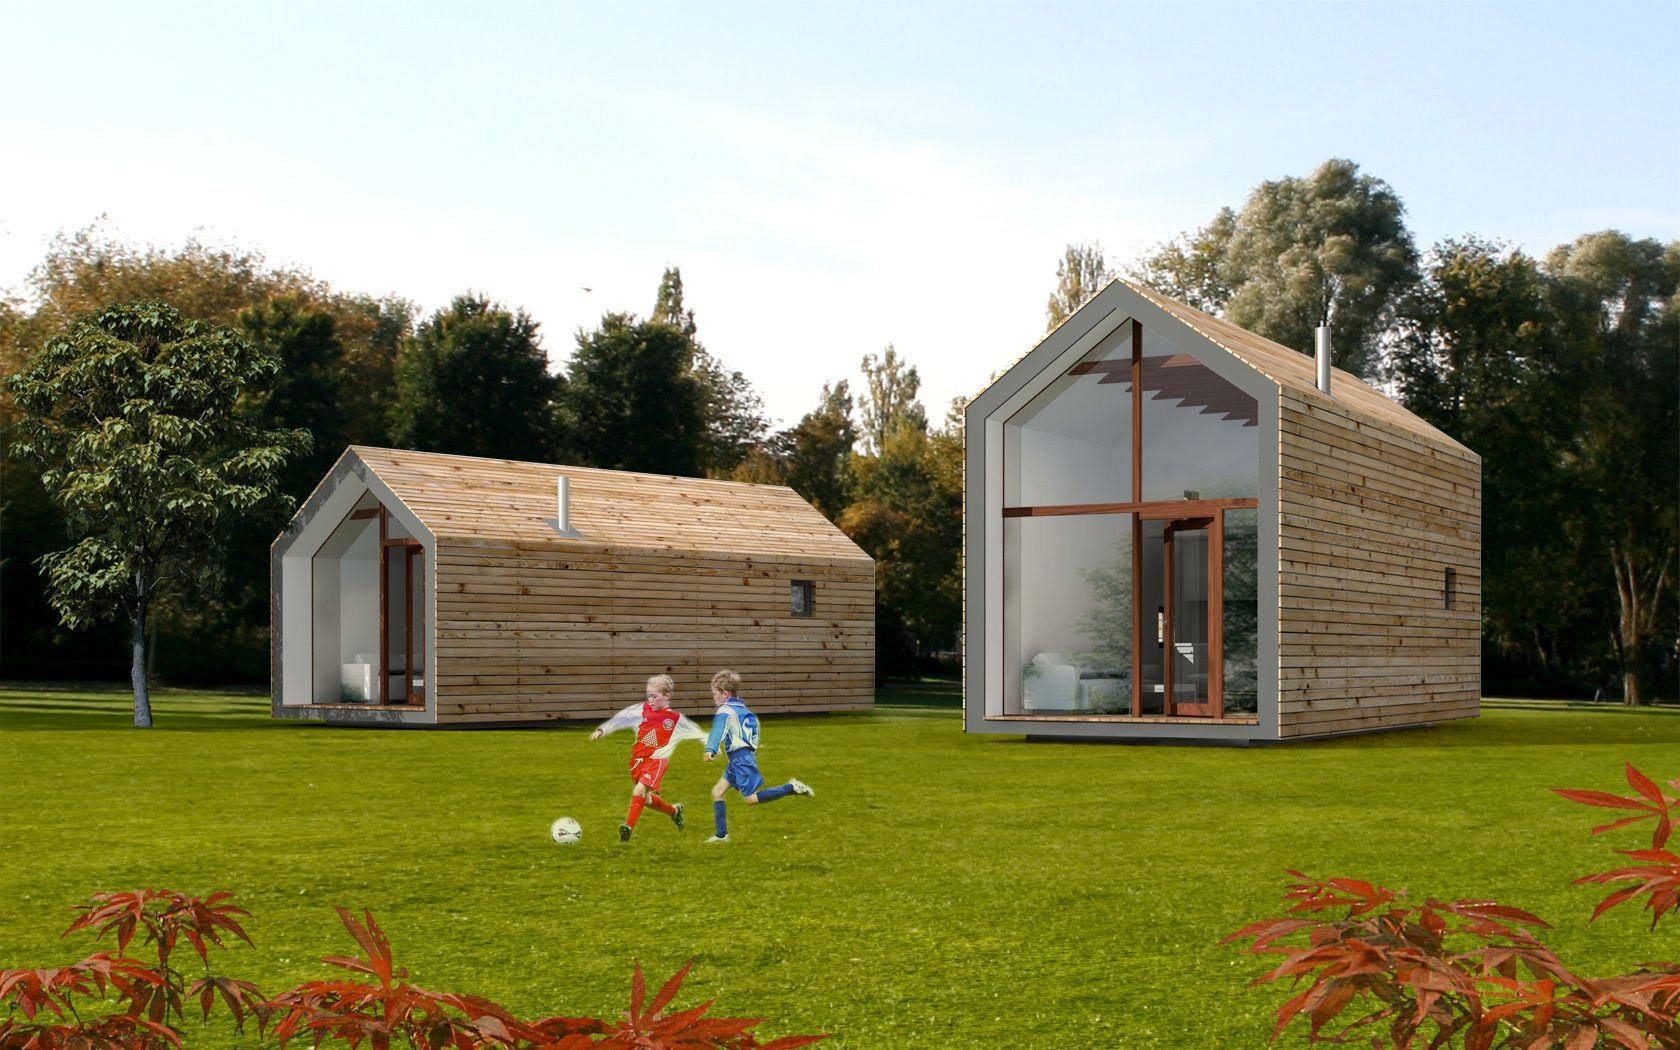 Small (22,40 m2 and 33,25 m2) prefabricated gabled, wood